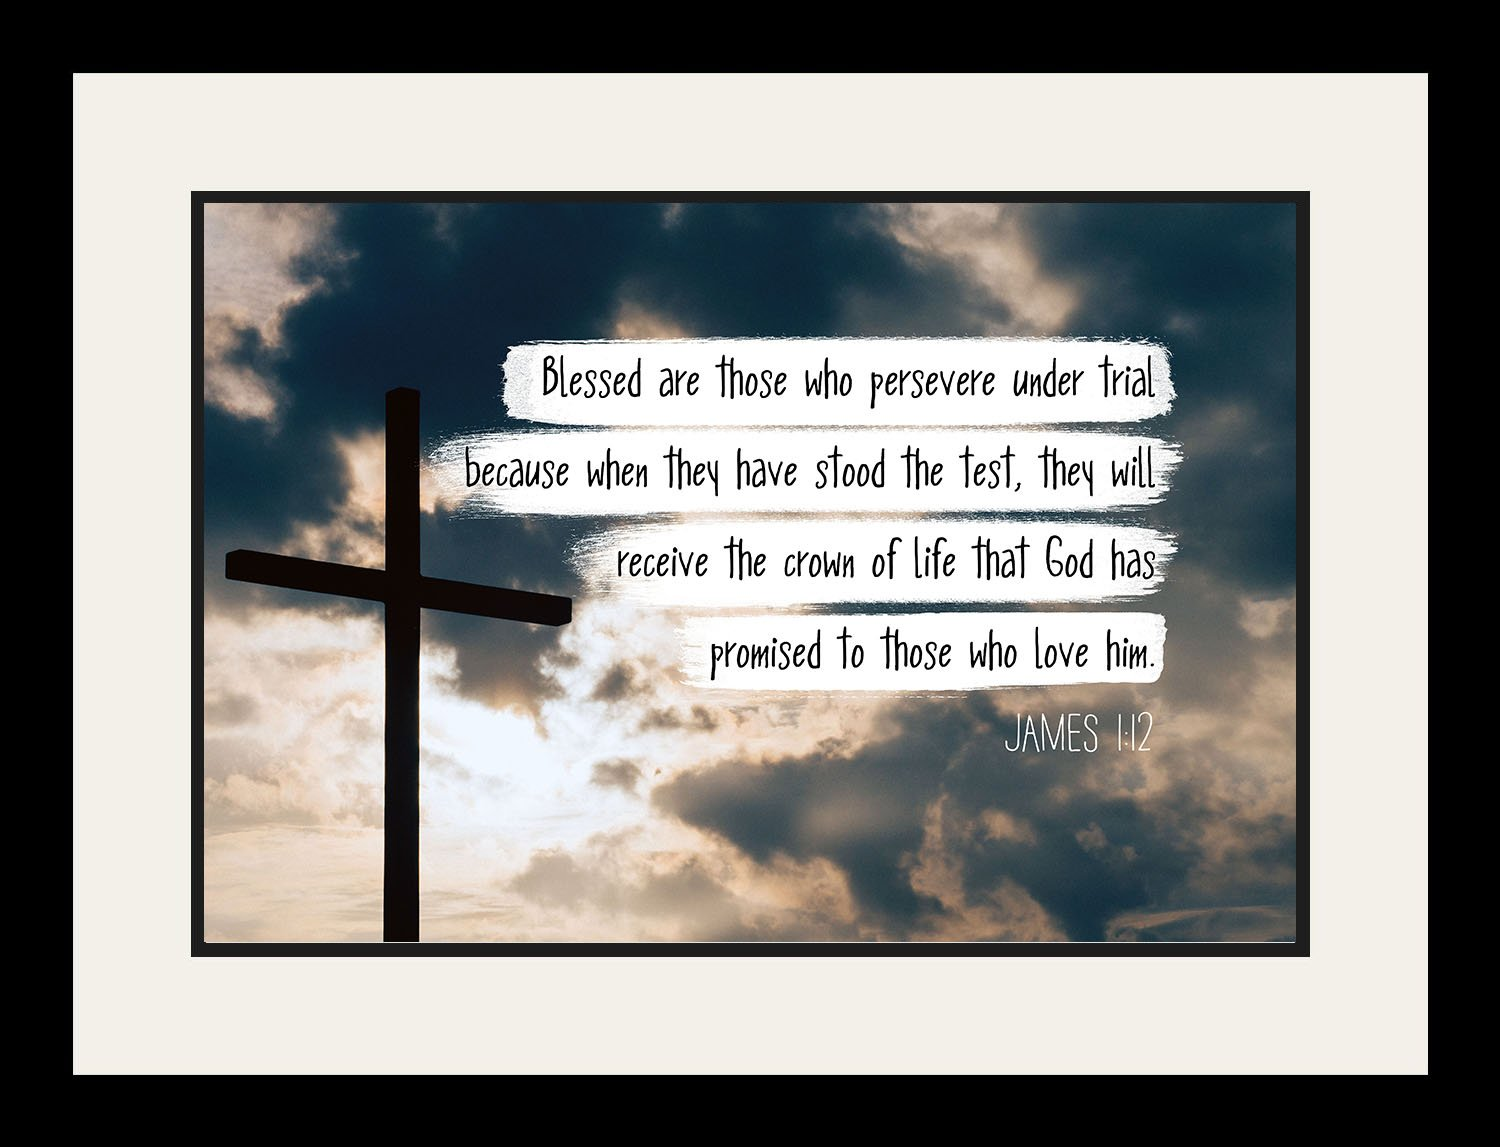 James 1:12 Blessed are those who persevere - Christian Poster, Print, Picture or Framed Wall Art Decor - Bible Verse Collection - Religious Gift for Holidays Christmas Baptism (19x25 Framed)